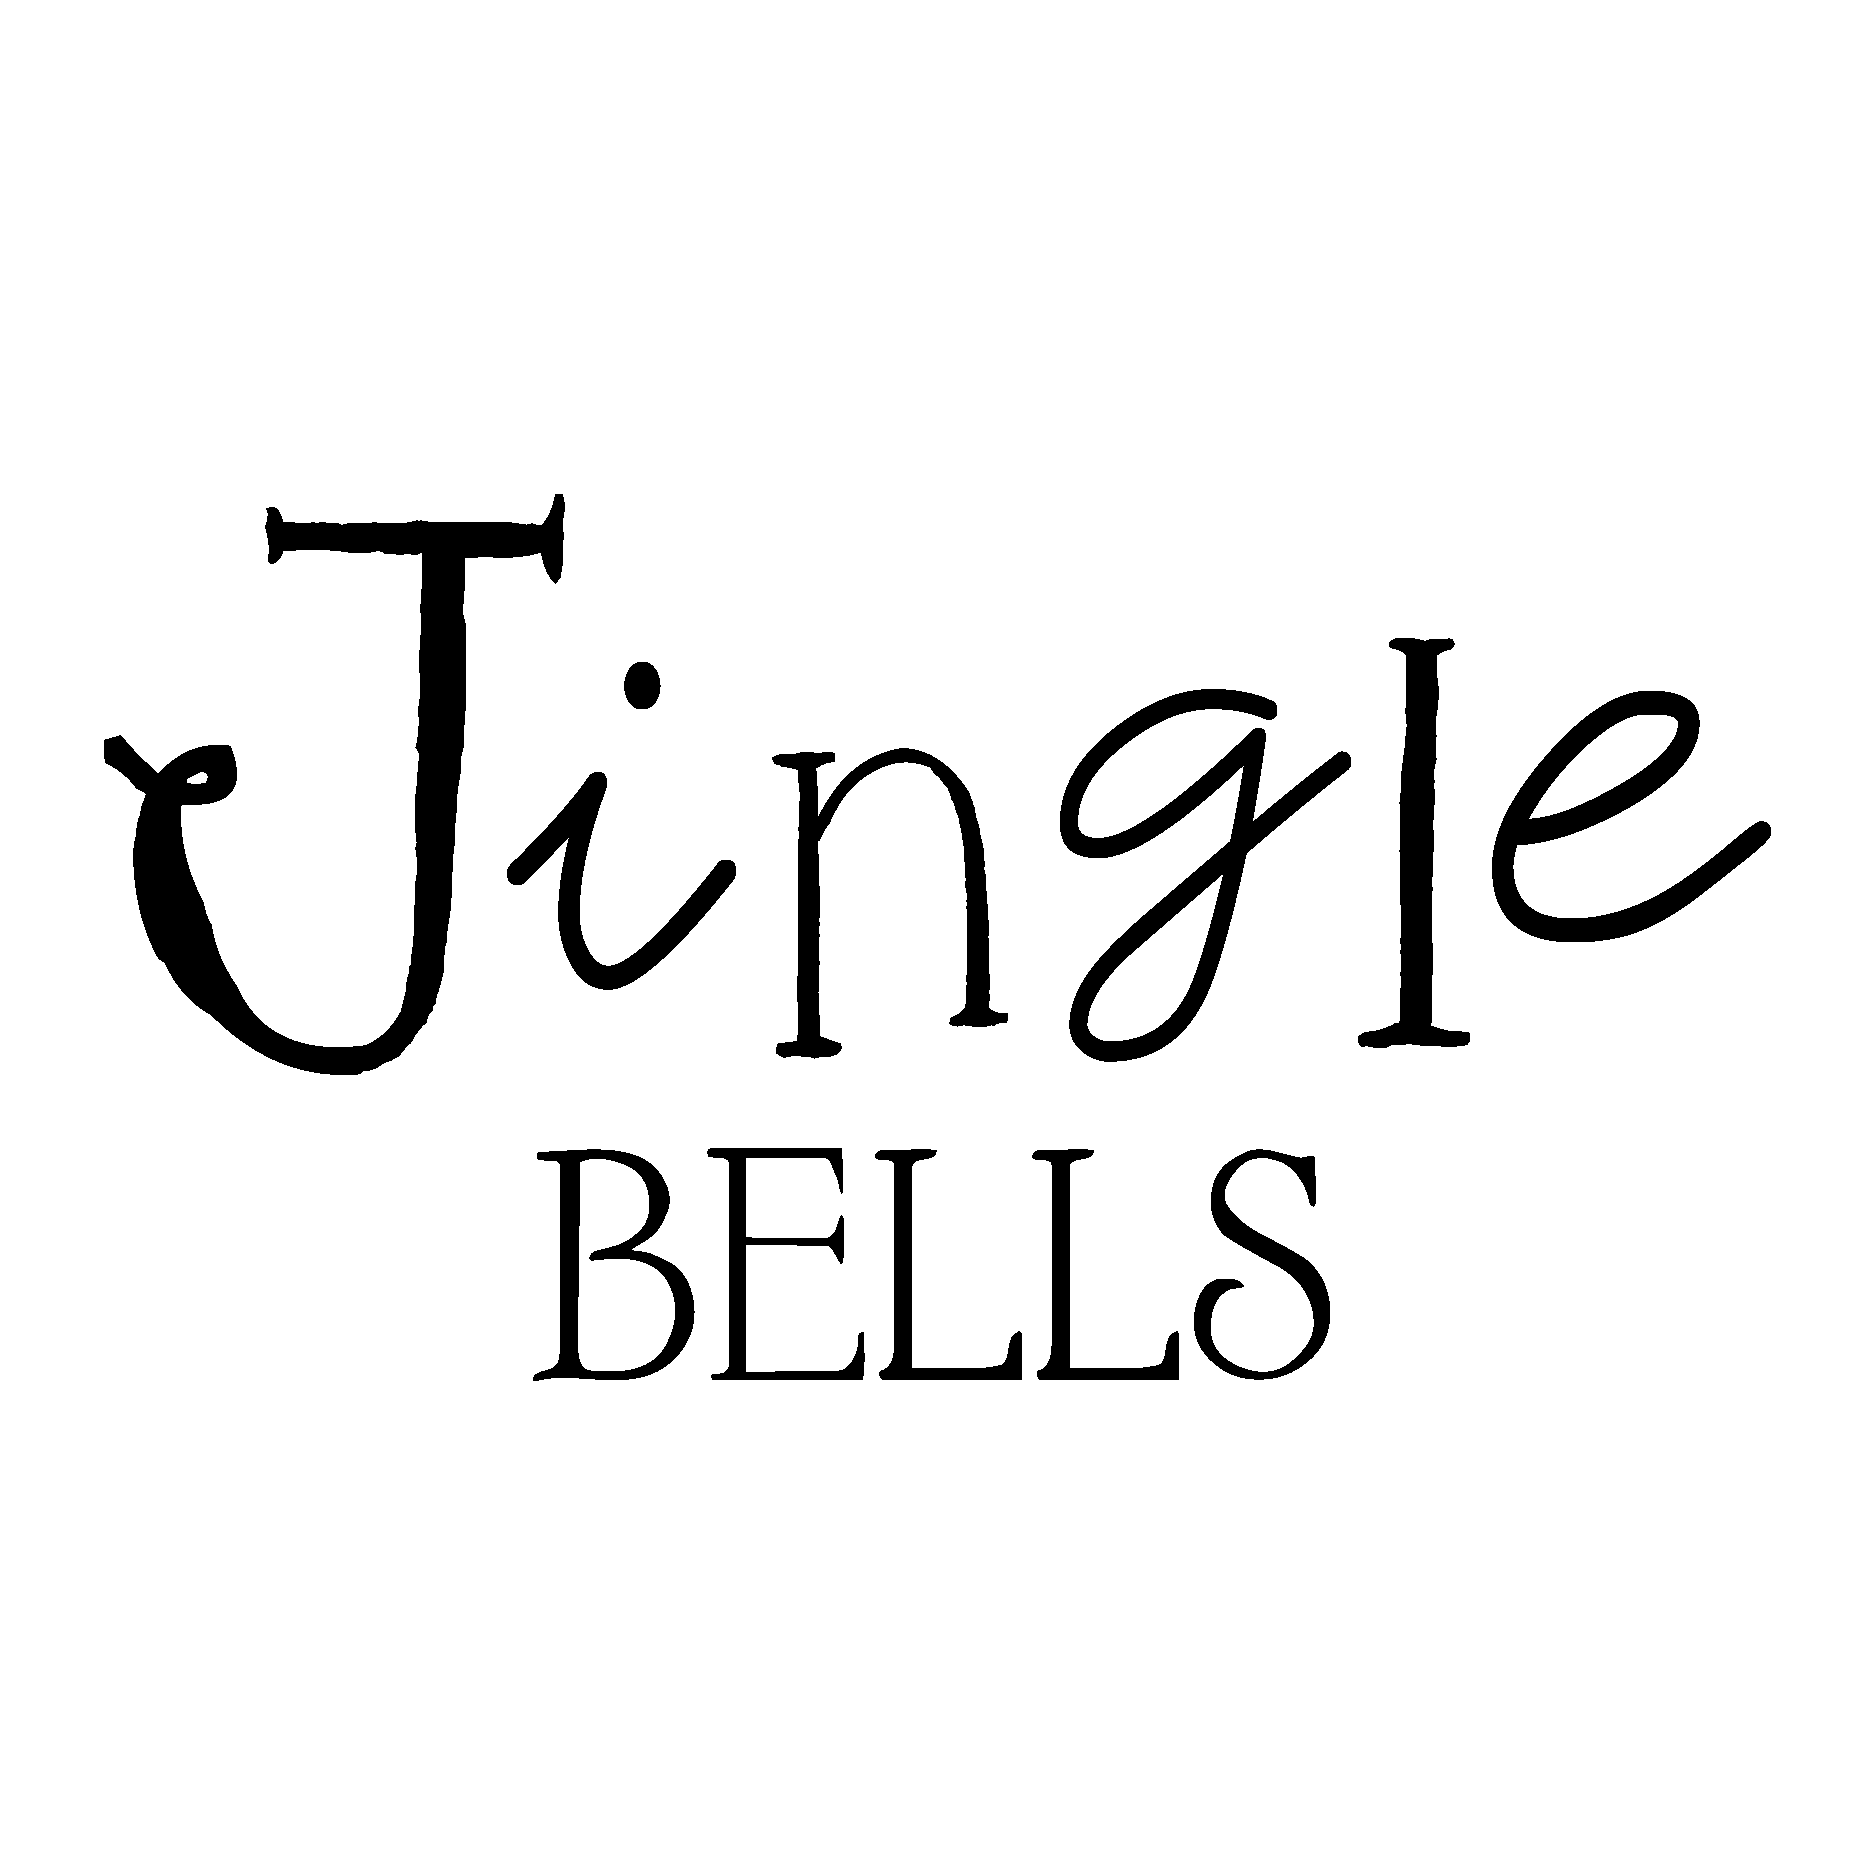 Whimsical Jingle Bells Wall Quotes Decal